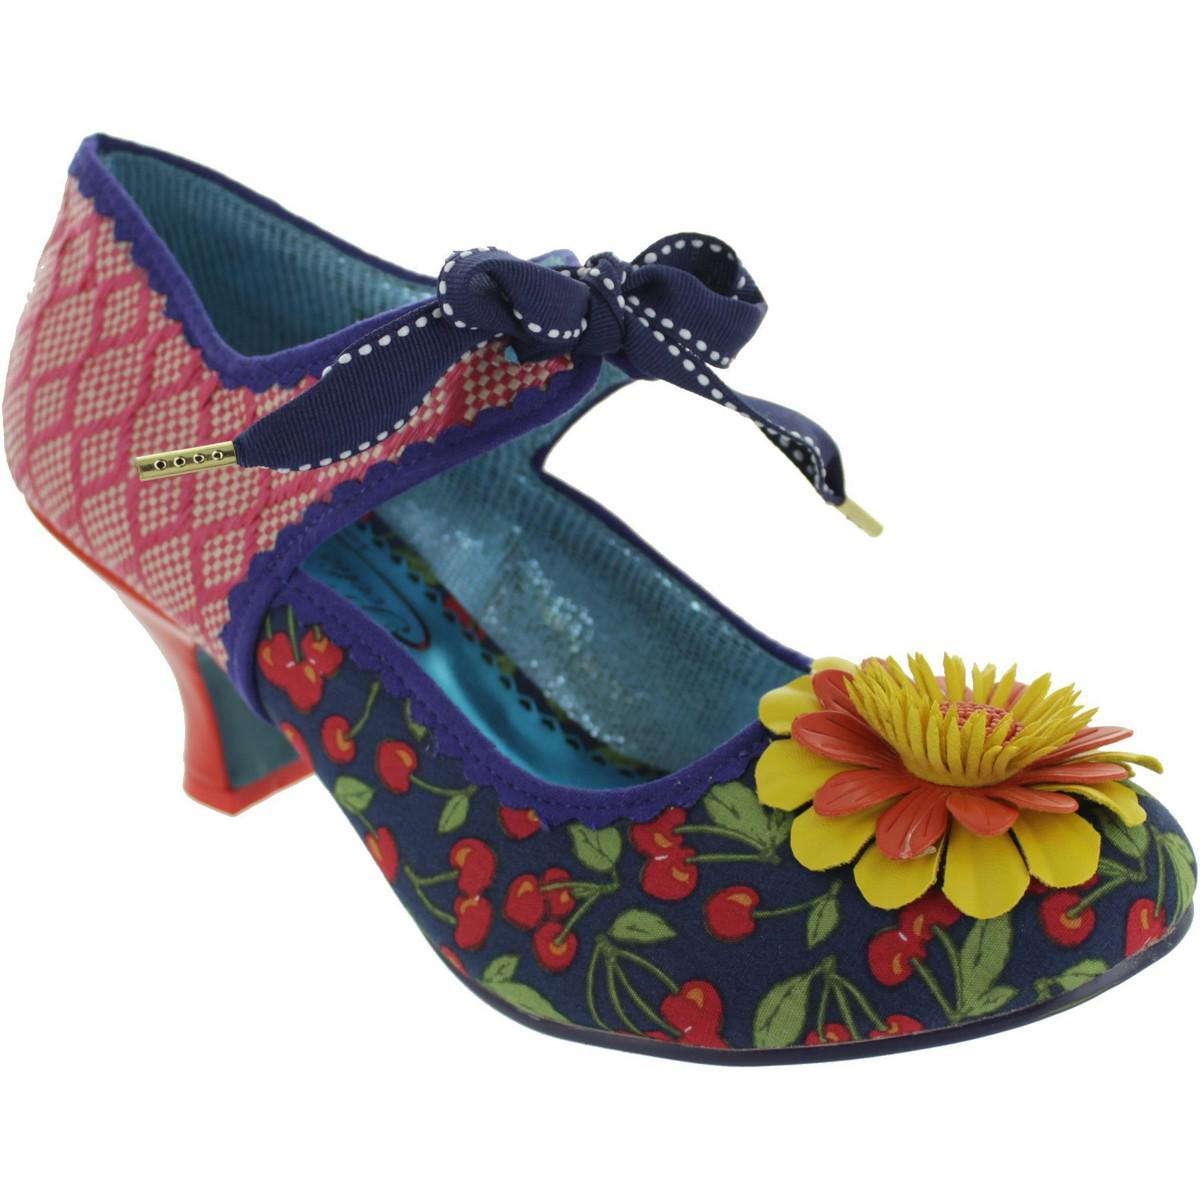 Designer Irregular Choice Golden Daisy women's Court Shoes in Shop Offer Online Stockist Online Outlet Locations Sale Online Clearance How Much xp3Tbd